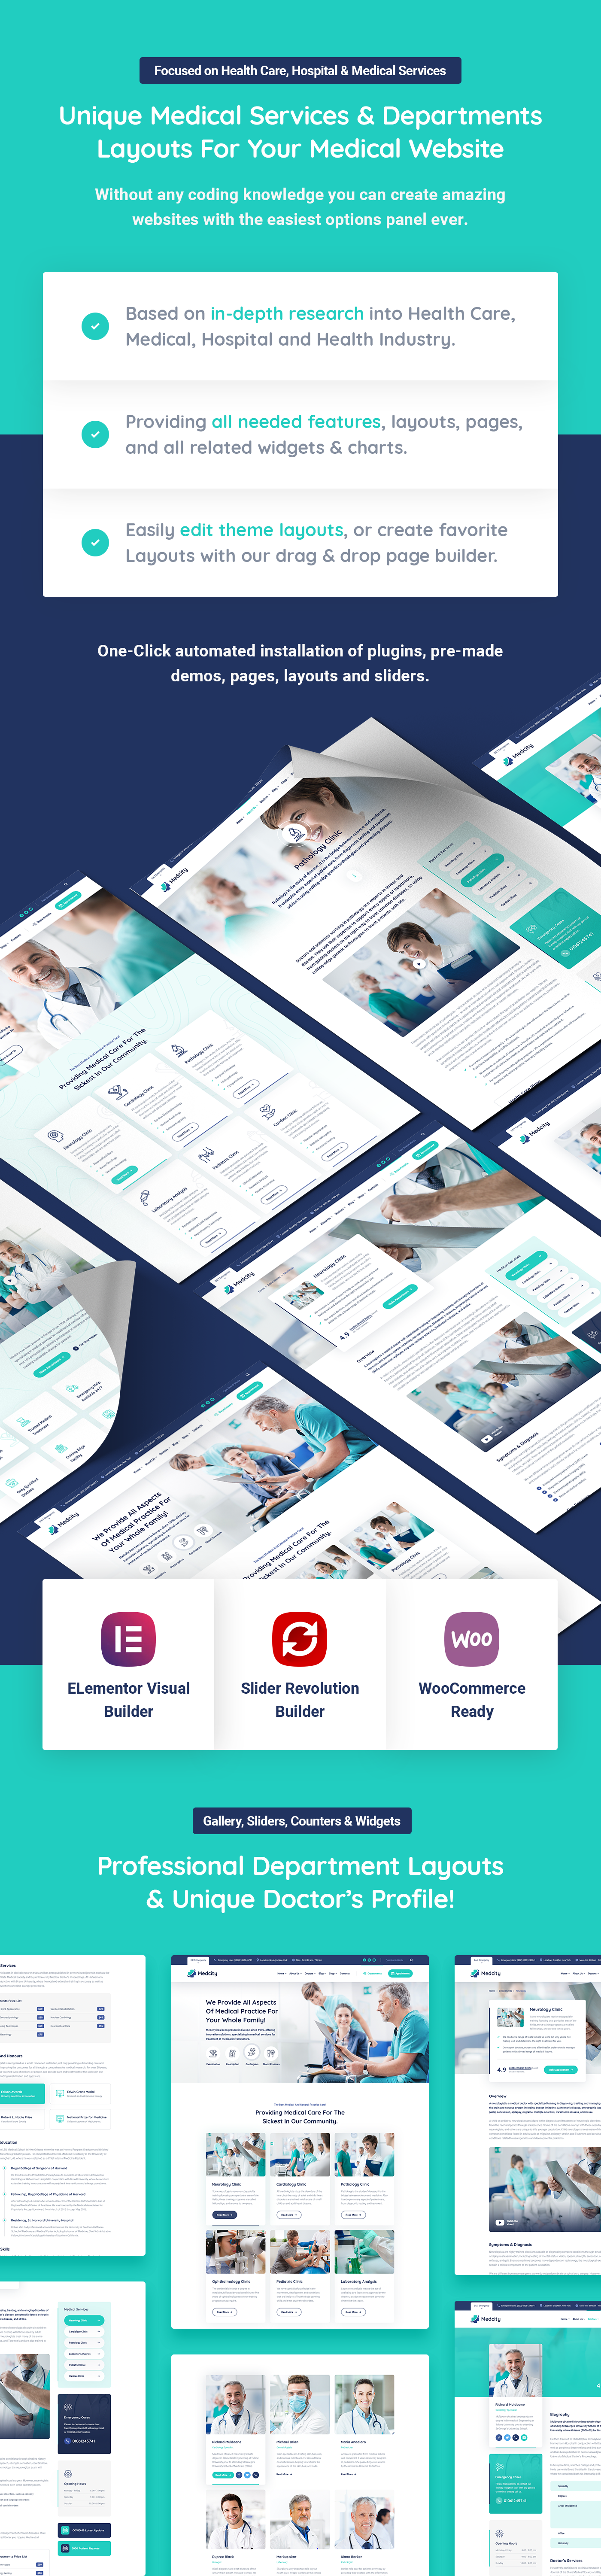 Medcity - Health & Medical WordPress Theme - 7